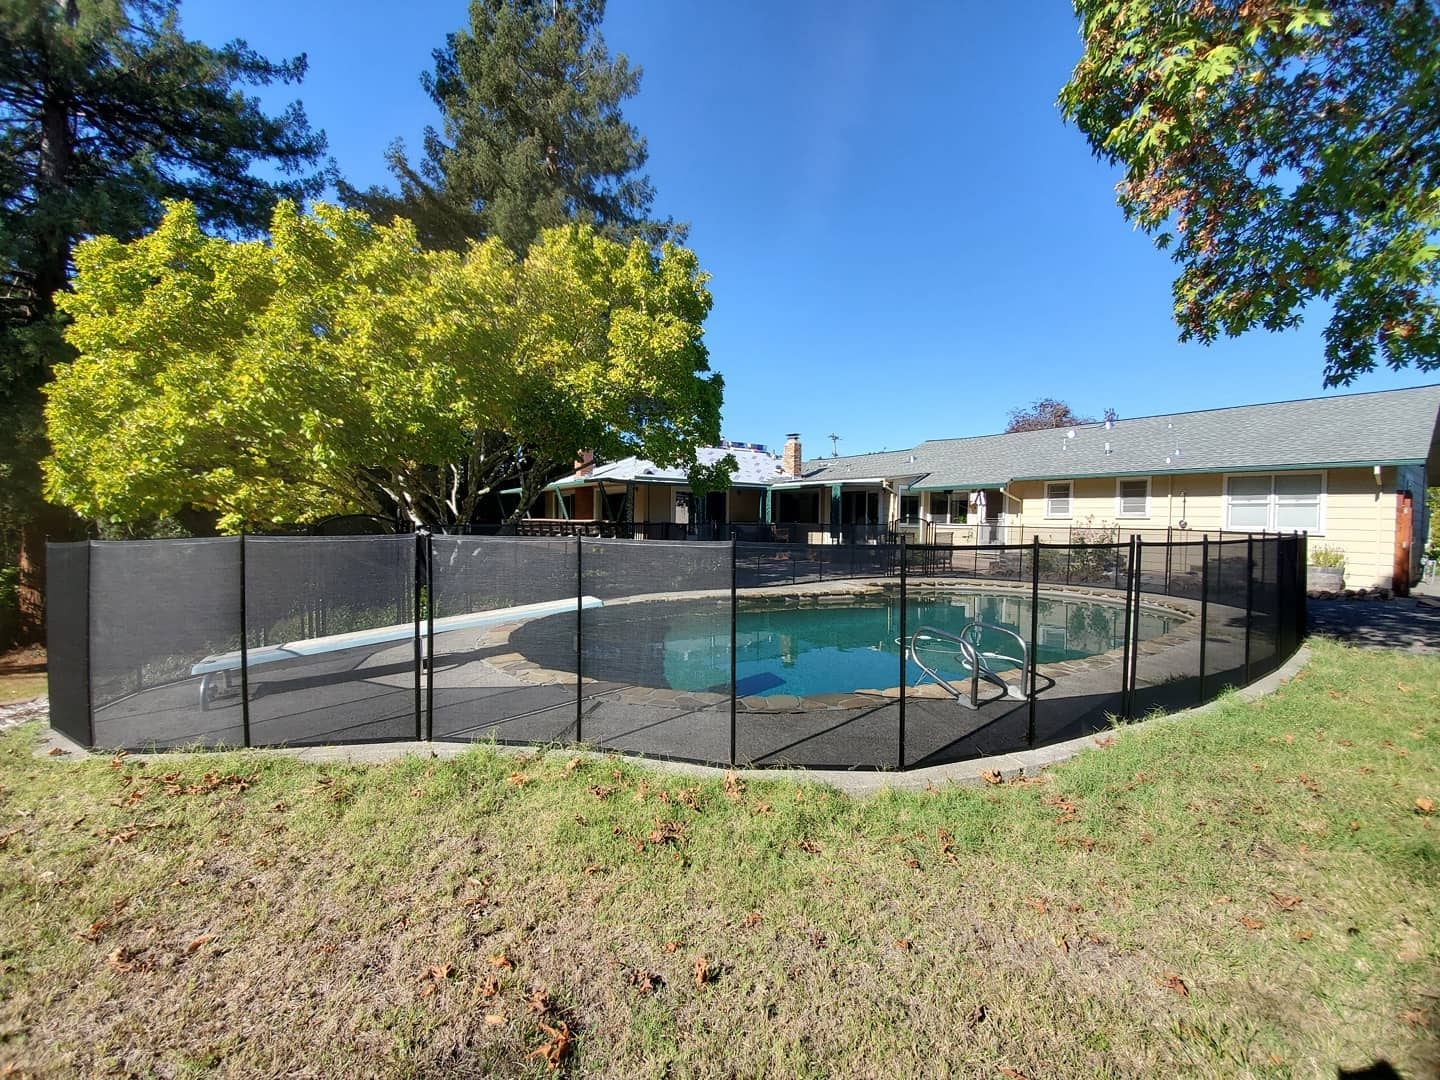 pool fence company/installer Livermore, CA